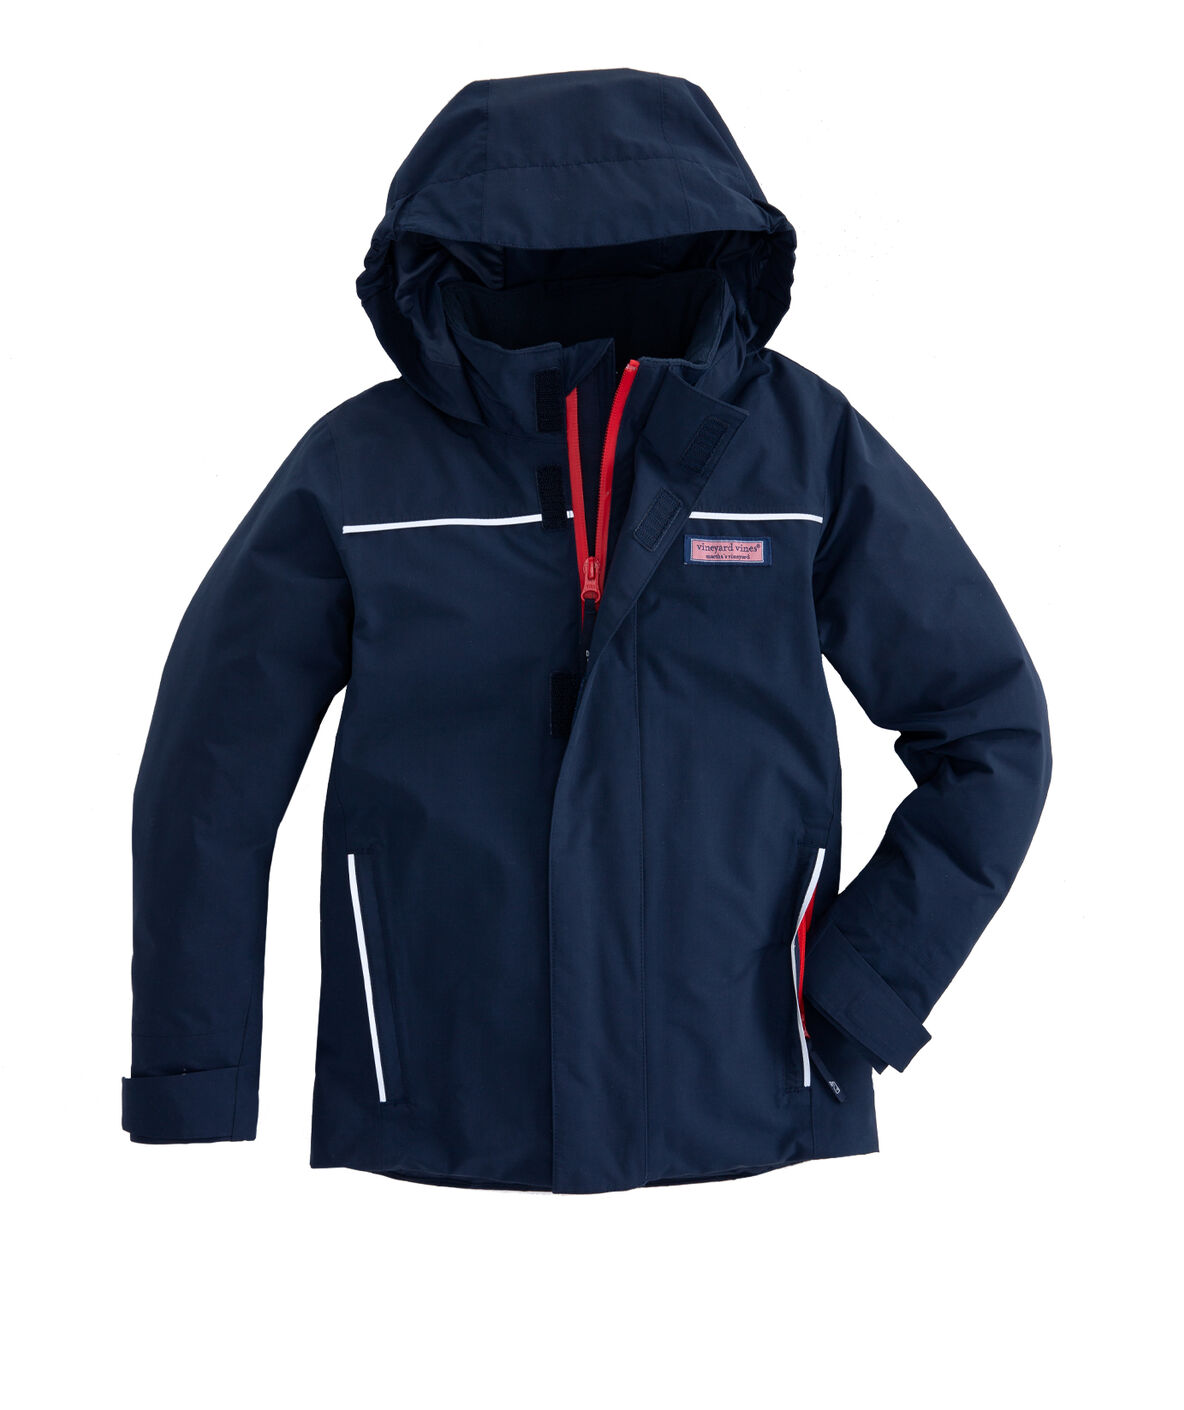 Shop Boys Nor Easter Puffer Jacket At Vineyard Vines